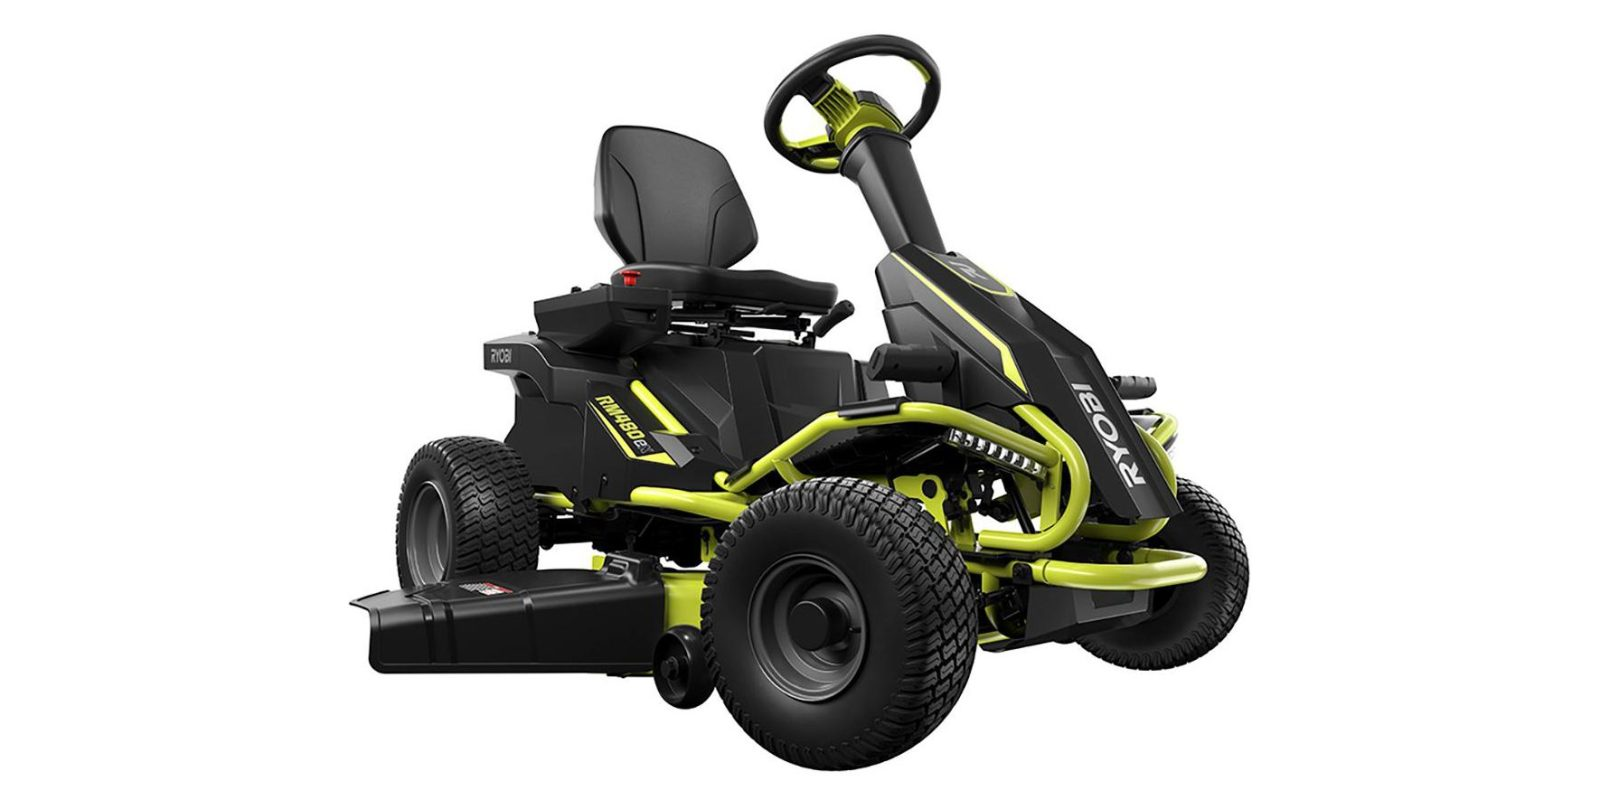 Ryobi's 38-inch Electric Riding Lawn Mower with bagger now $2,600 ($400 off)